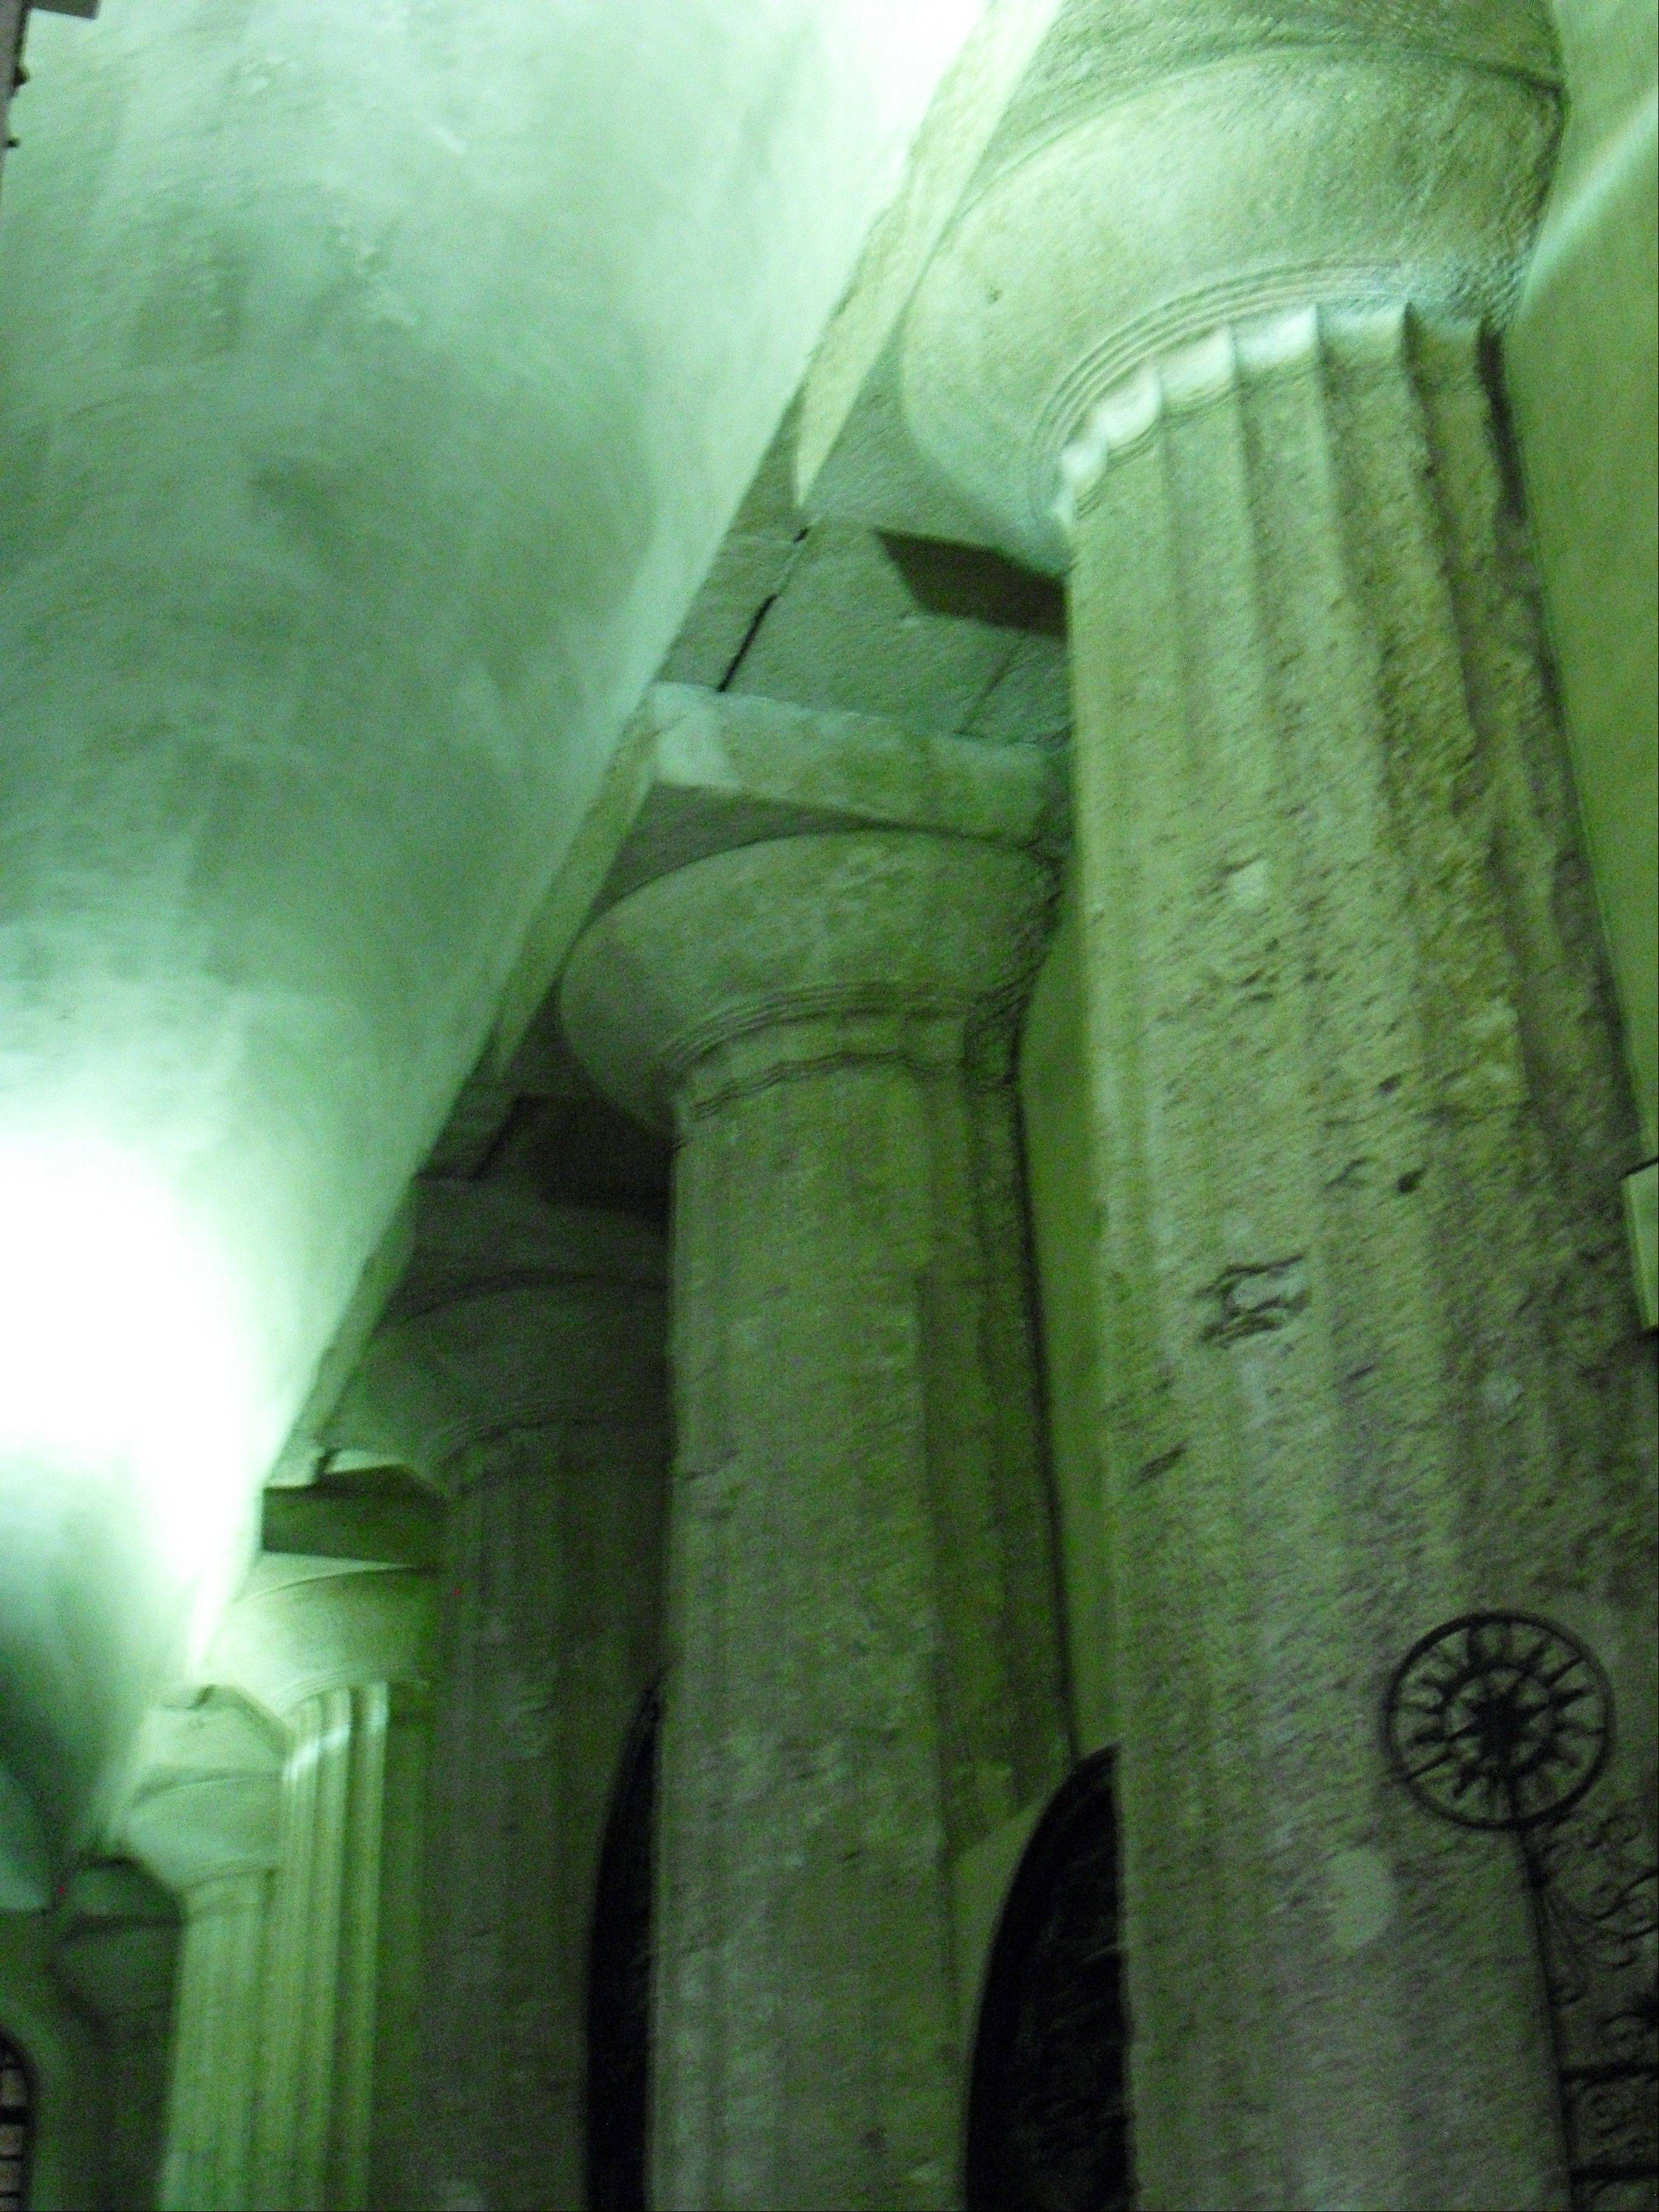 Doric columns can be seen in the interior of the Catholic cathedral in the Piazza del Duomo on the Sicilian island of Ortygia.